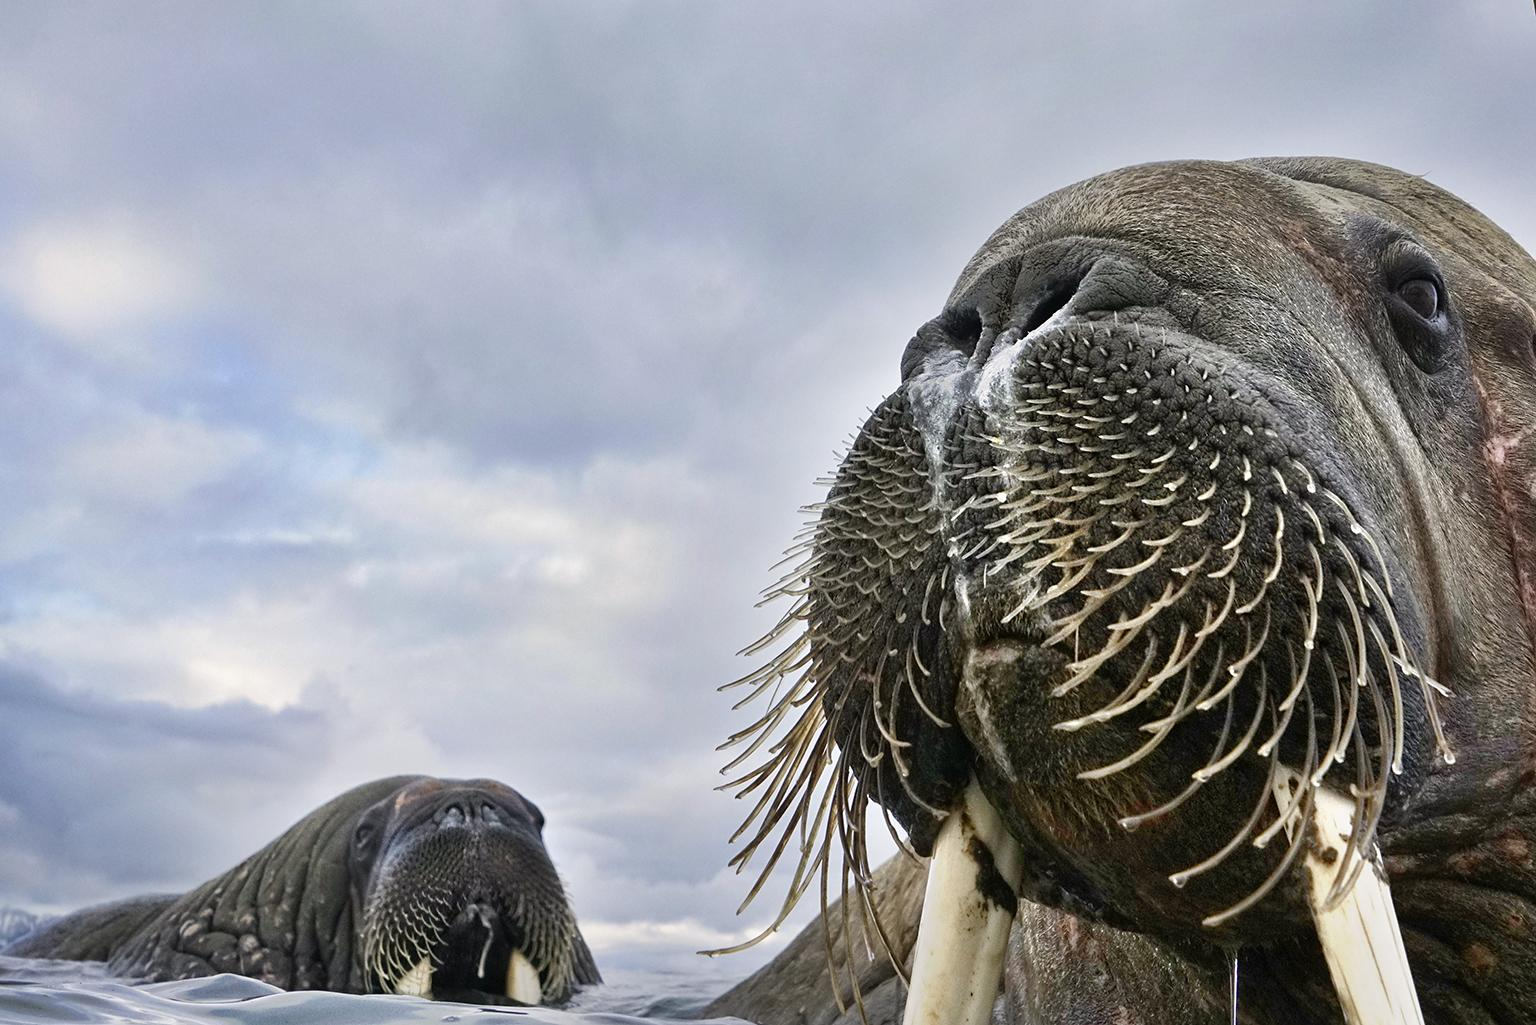 Having spotted walruses from his dinghy off the coast of Svalbard, Norway, photographer Valter Bernardeschi slipped into icy water to photograph them. He captured these young walruses with his camera on a float. (© Valter Bernardeschi, Italy)